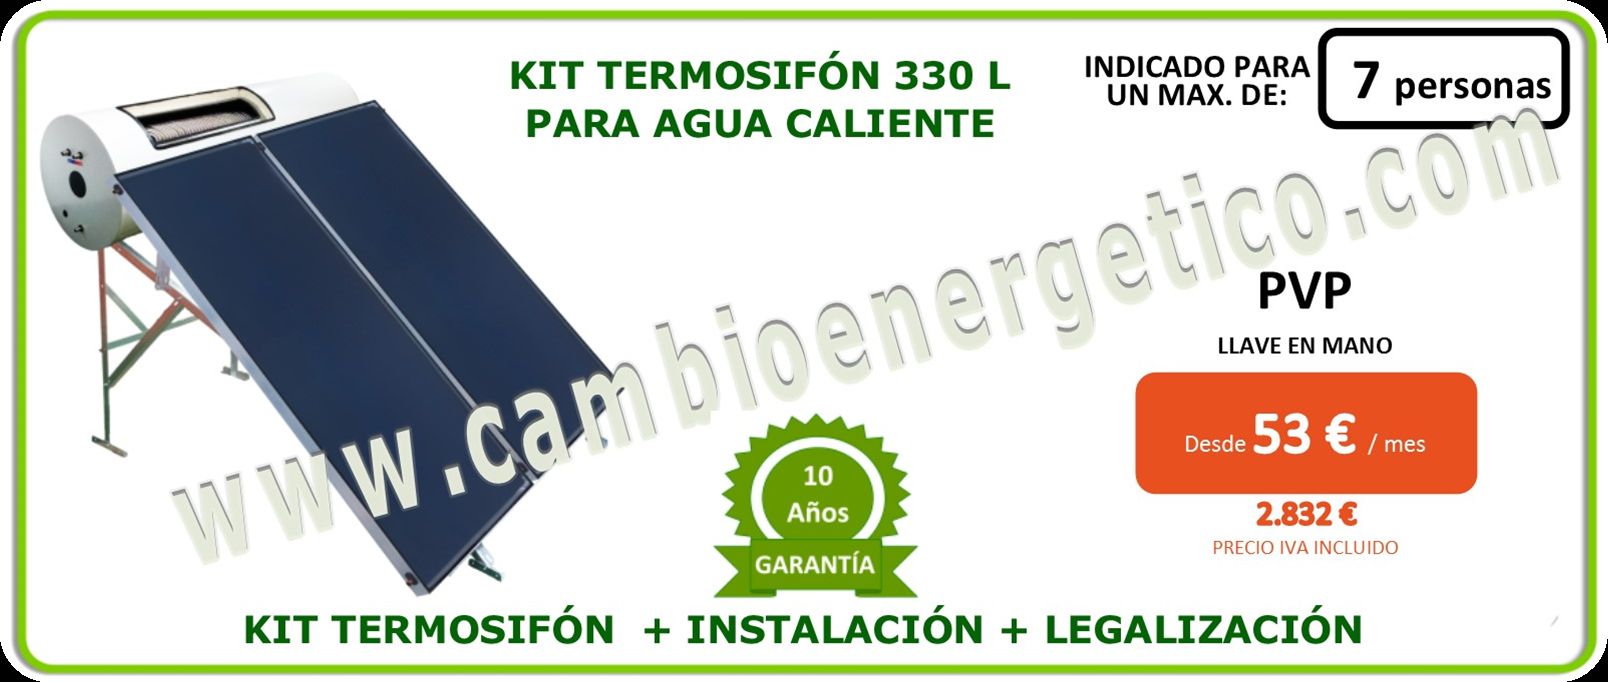 Kit termosifon 330 l